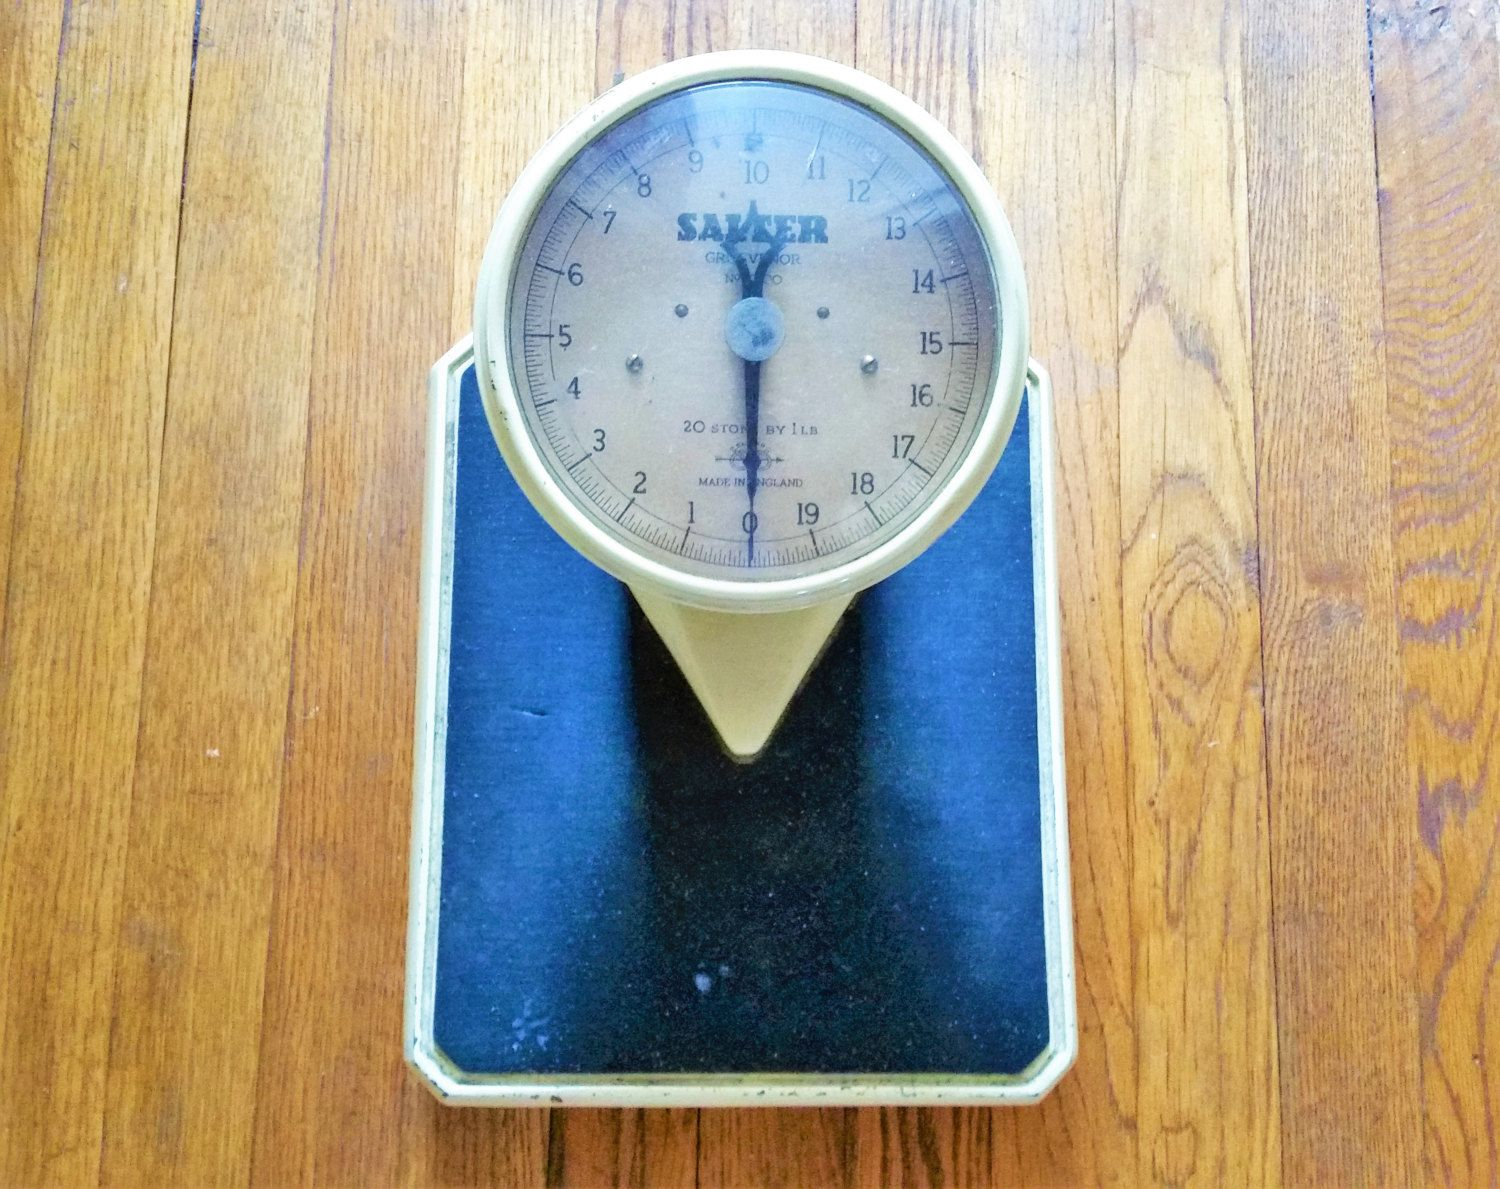 Vintage Salter Bathroom Scales 1950s Medical Scales Cast Iron